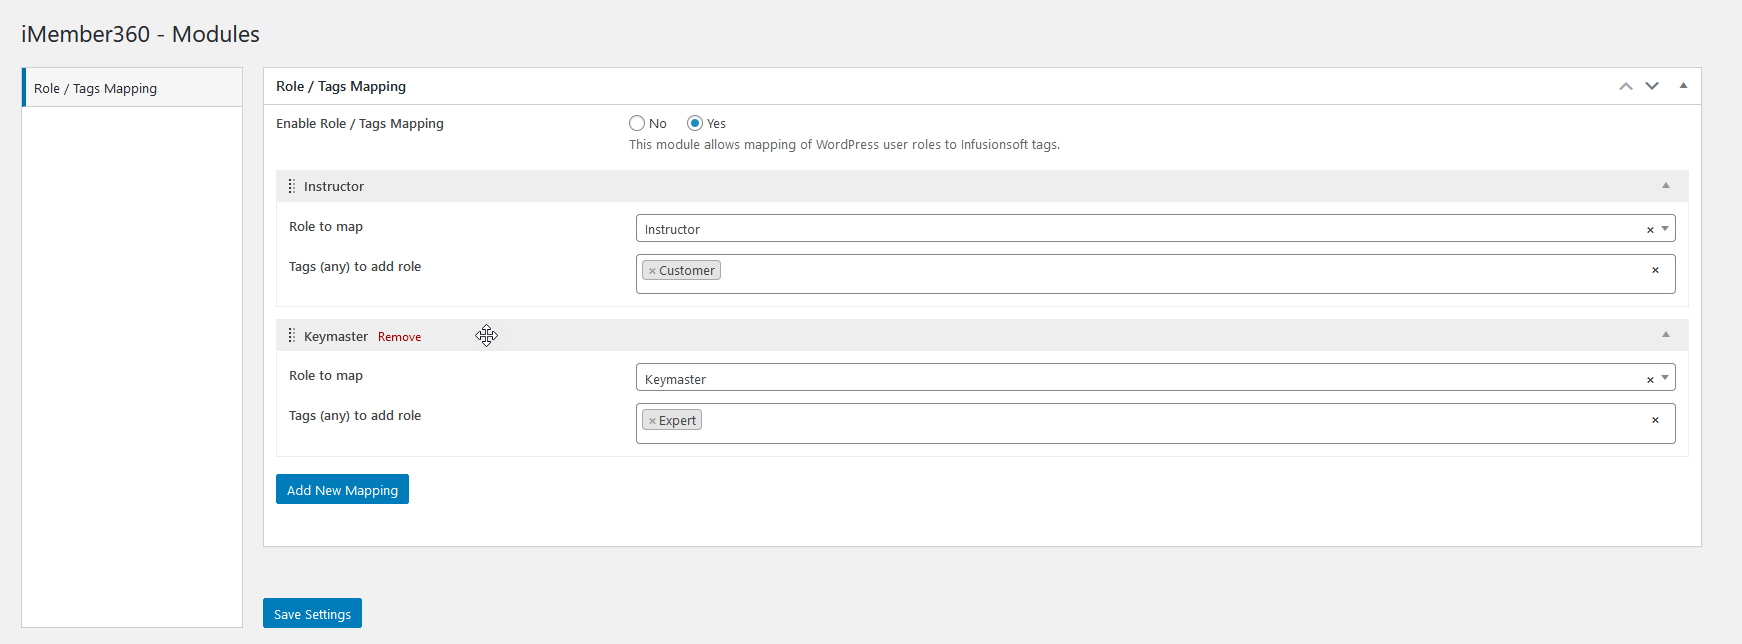 Steps for reordering role/tags mappings